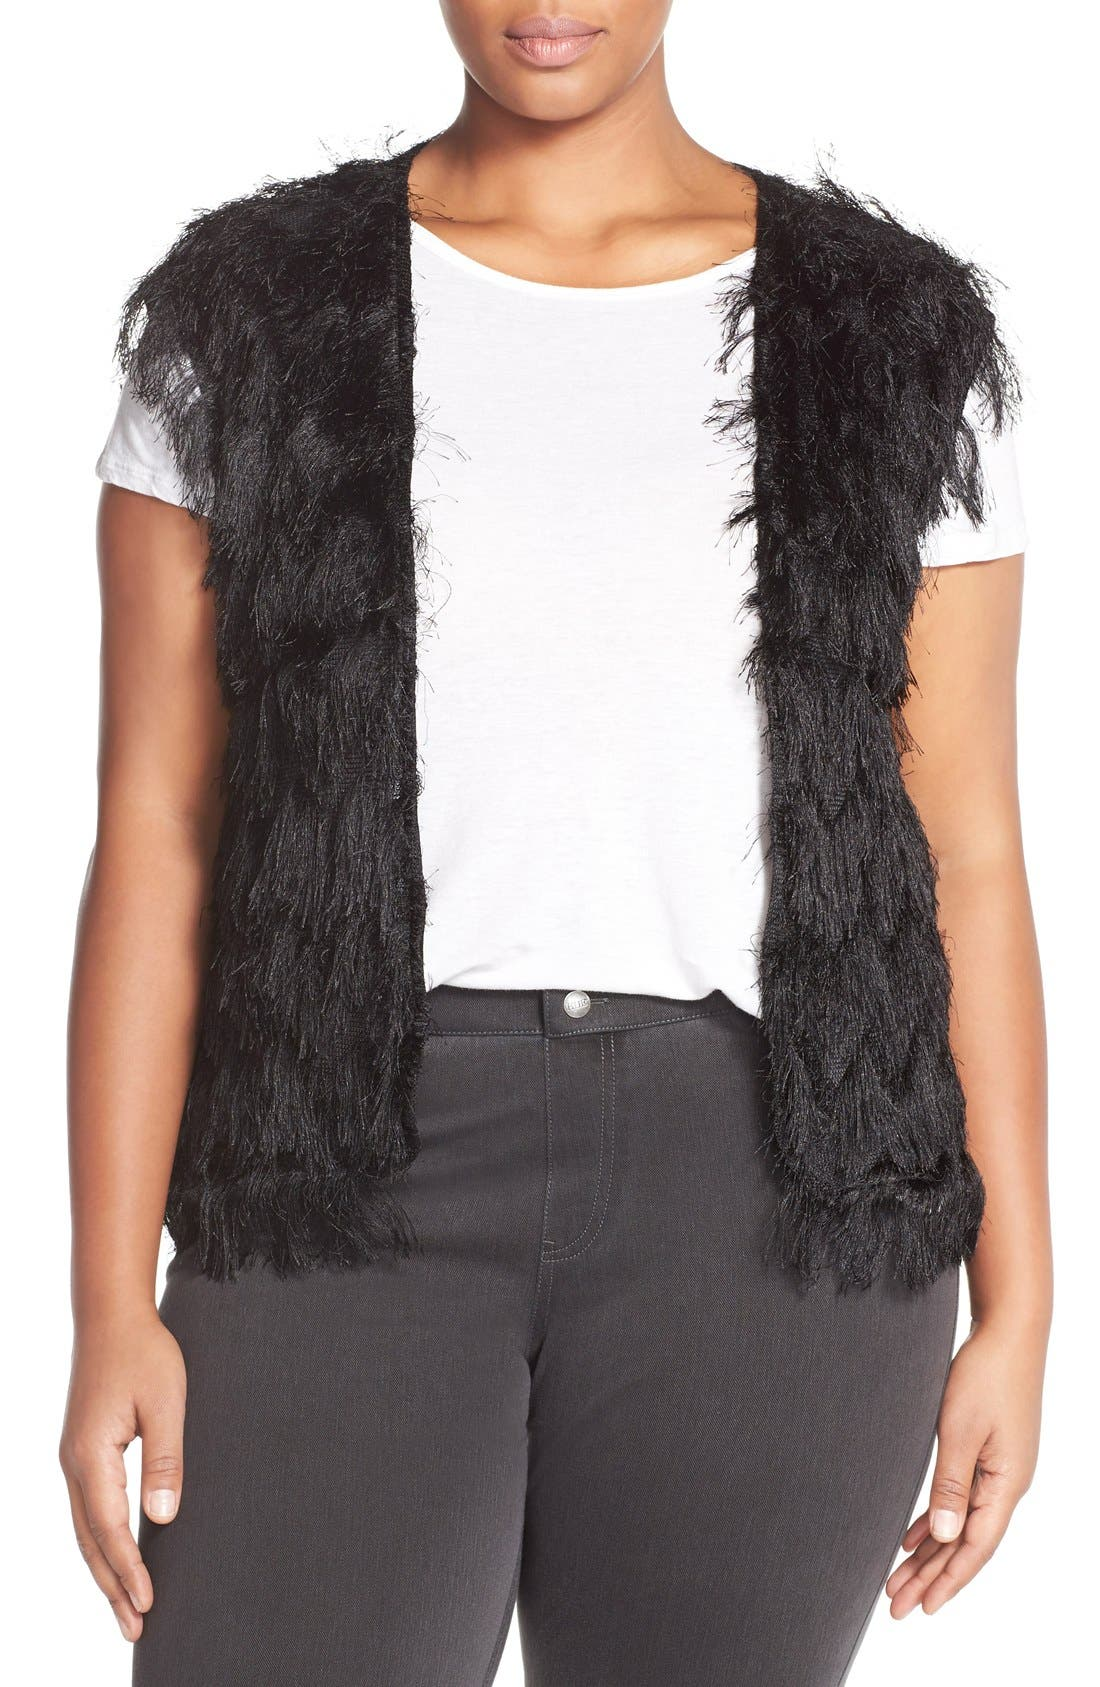 CITY CHIC 'Disco Fringe' Vest, Main, color, 001